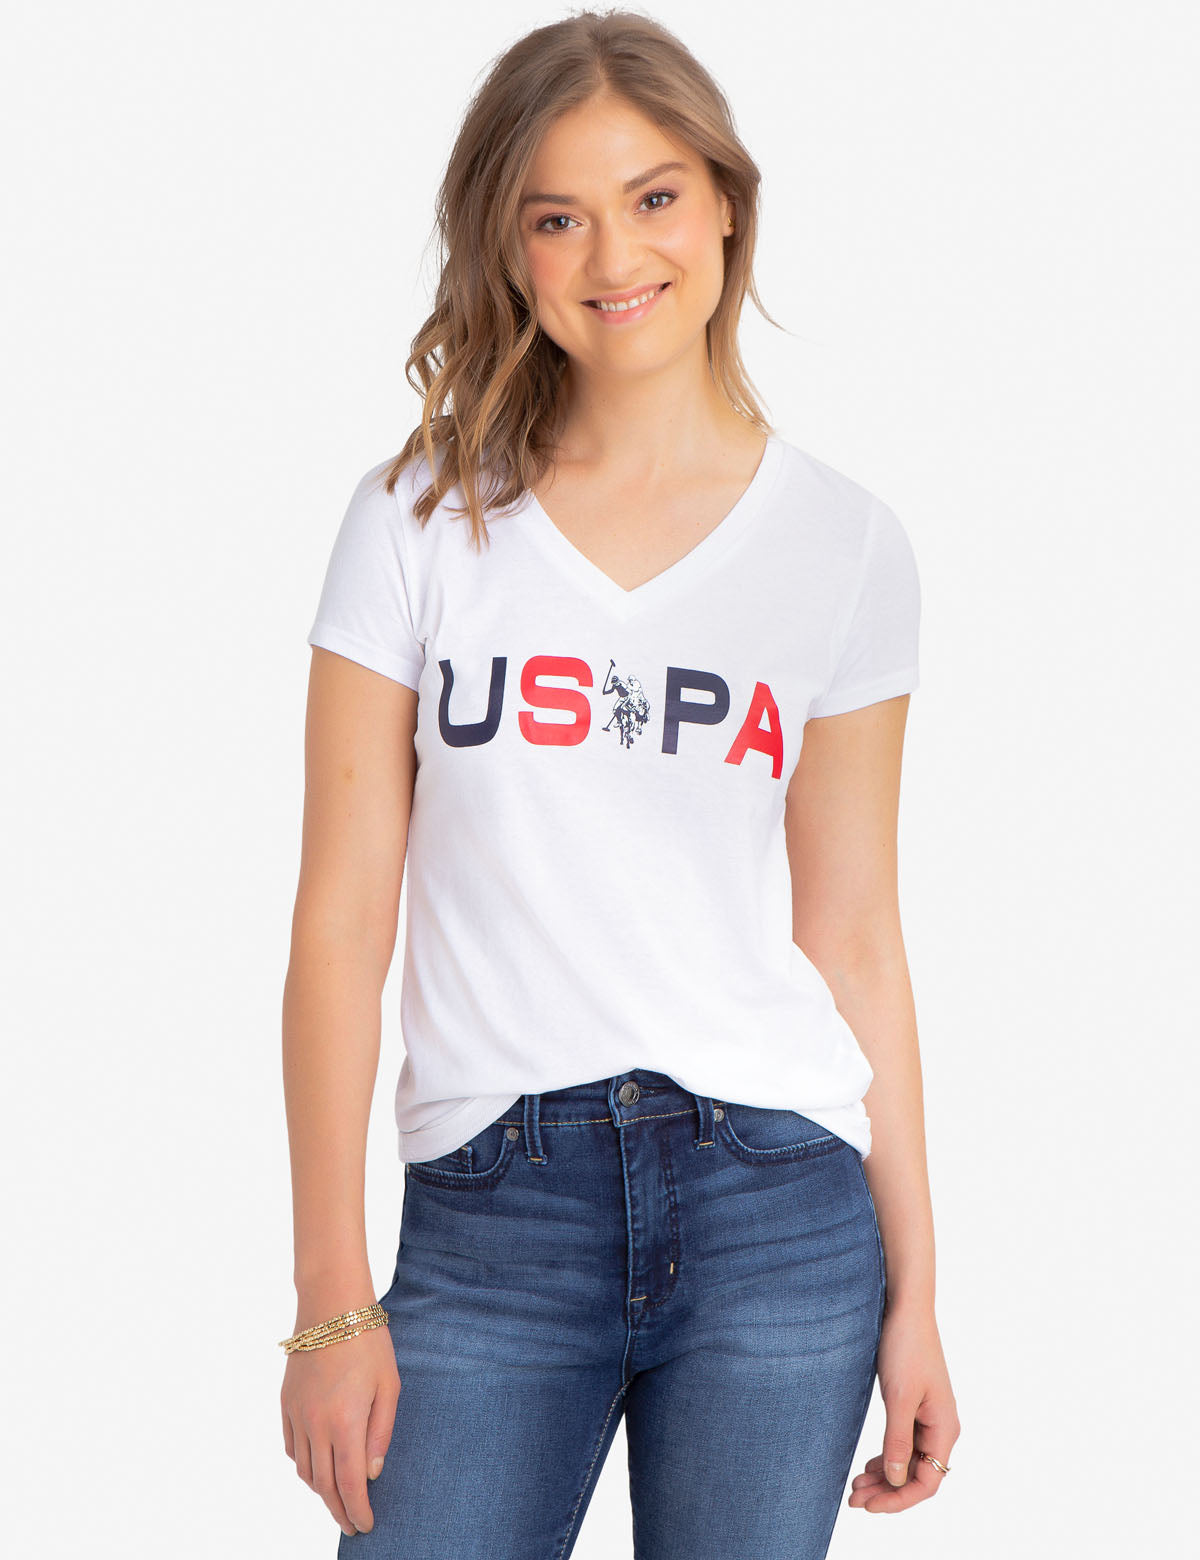 USPA V-NECK TEE-SHIRT